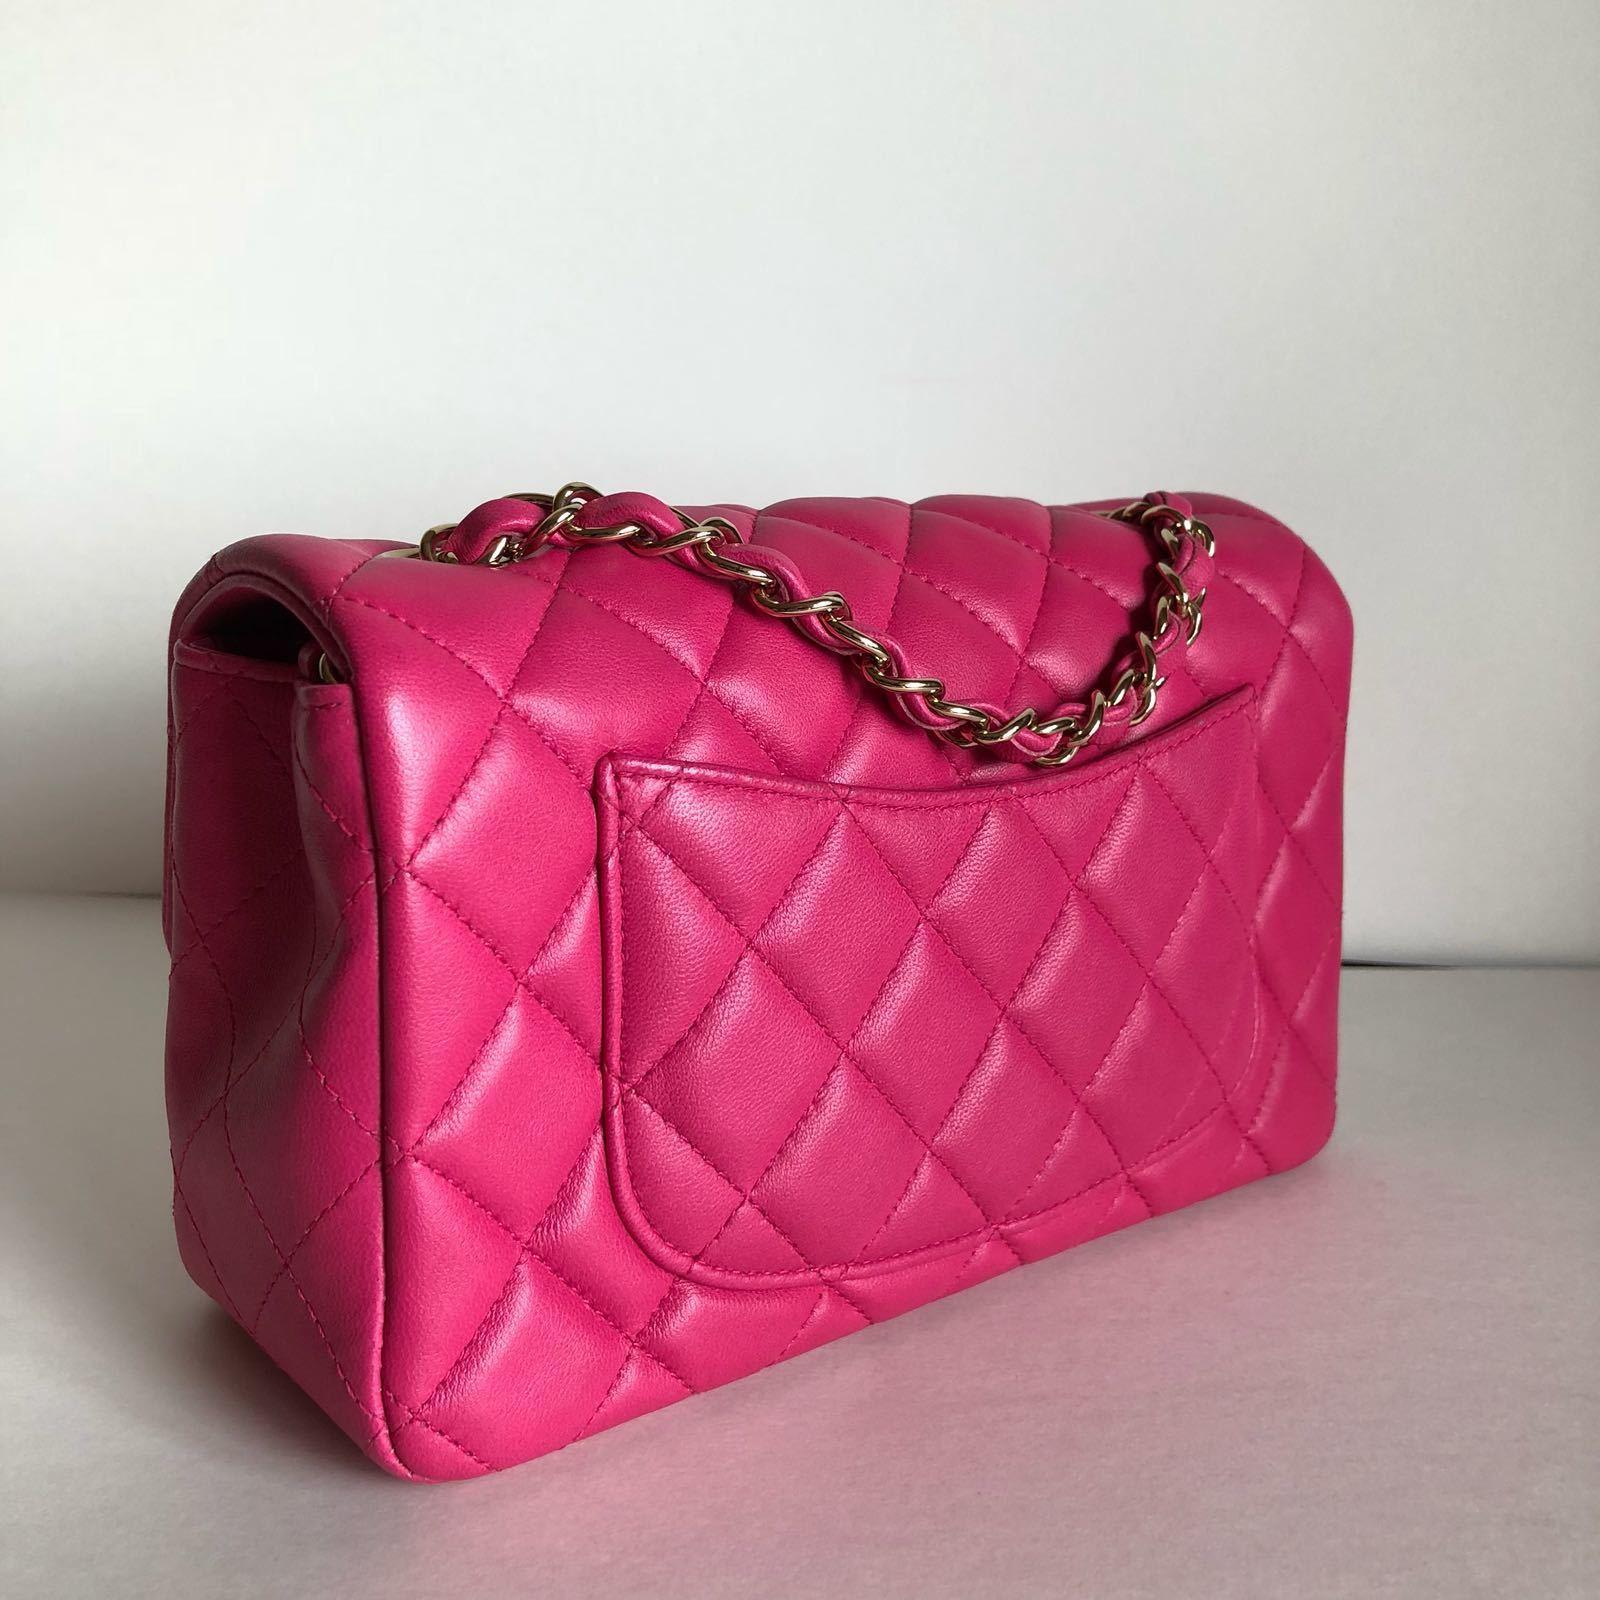 ac9f443fb0cb5 ... Chanel Rectangular Mini Pink Bag ...